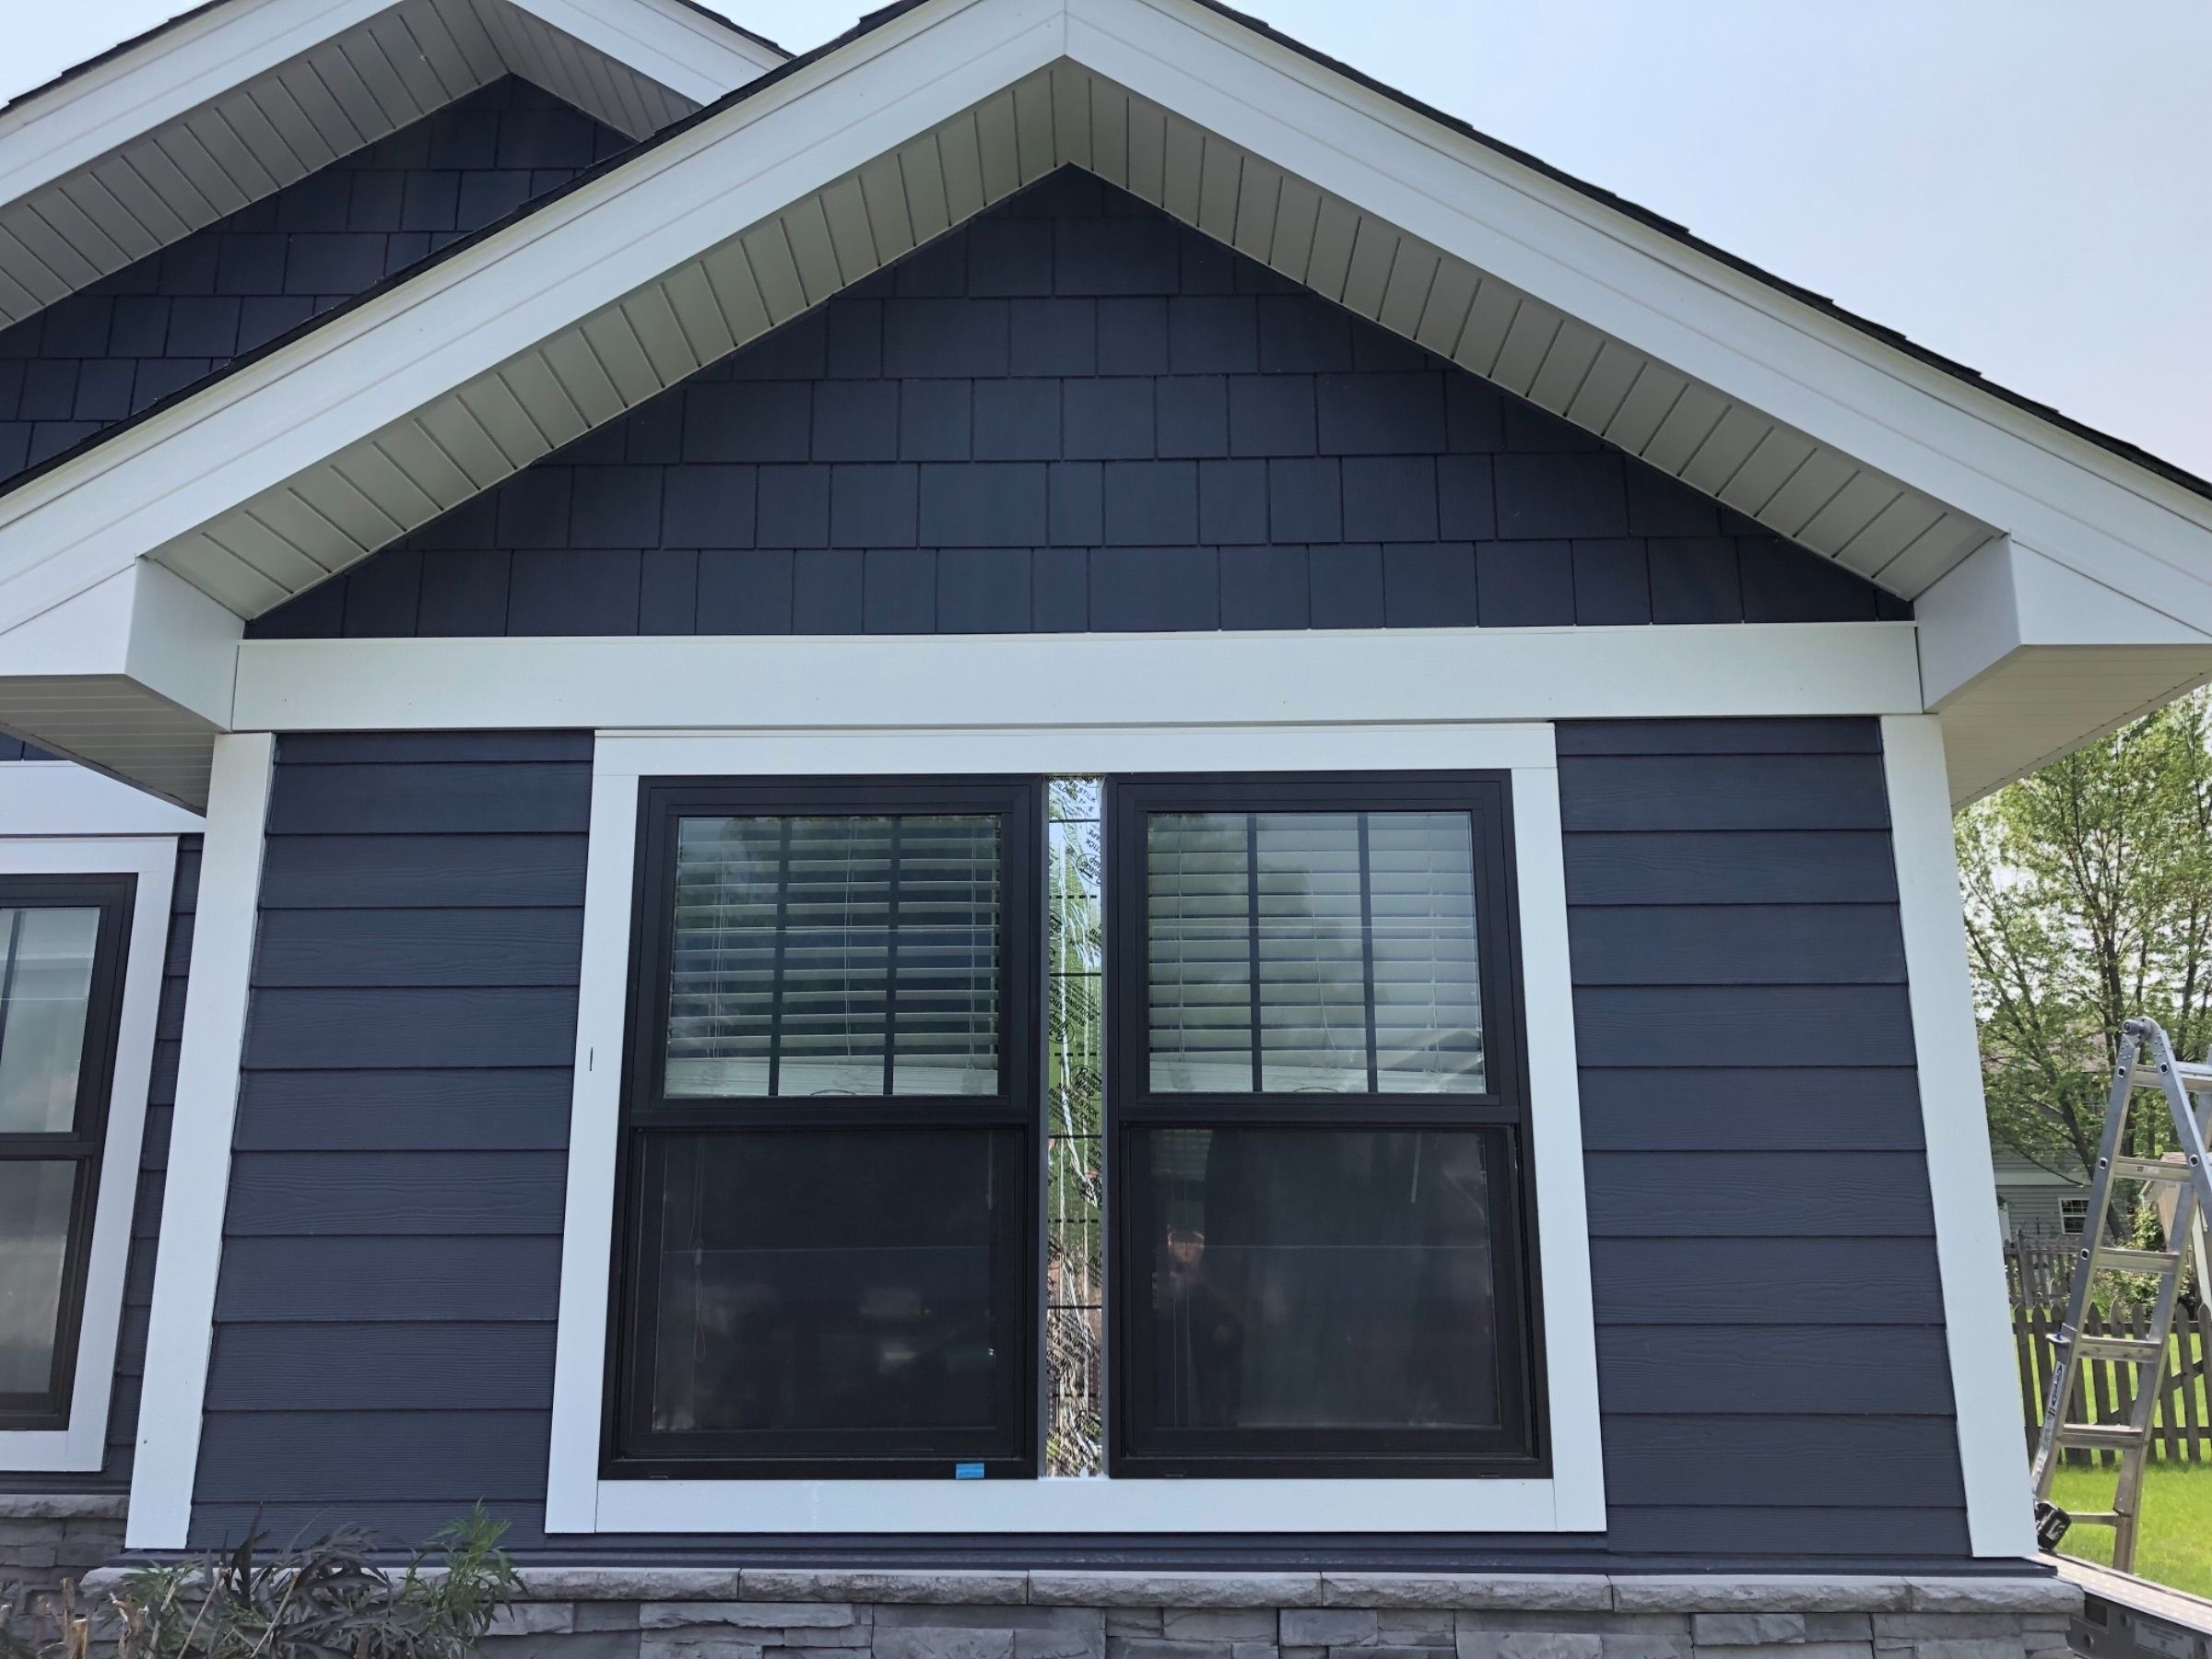 These Homeowners Wanted A Trex Decking And James Hardie Siding 4 Season Room Pbs Installed James Hardie Fiber C James Hardie Siding Hardie Plank Hardie Siding